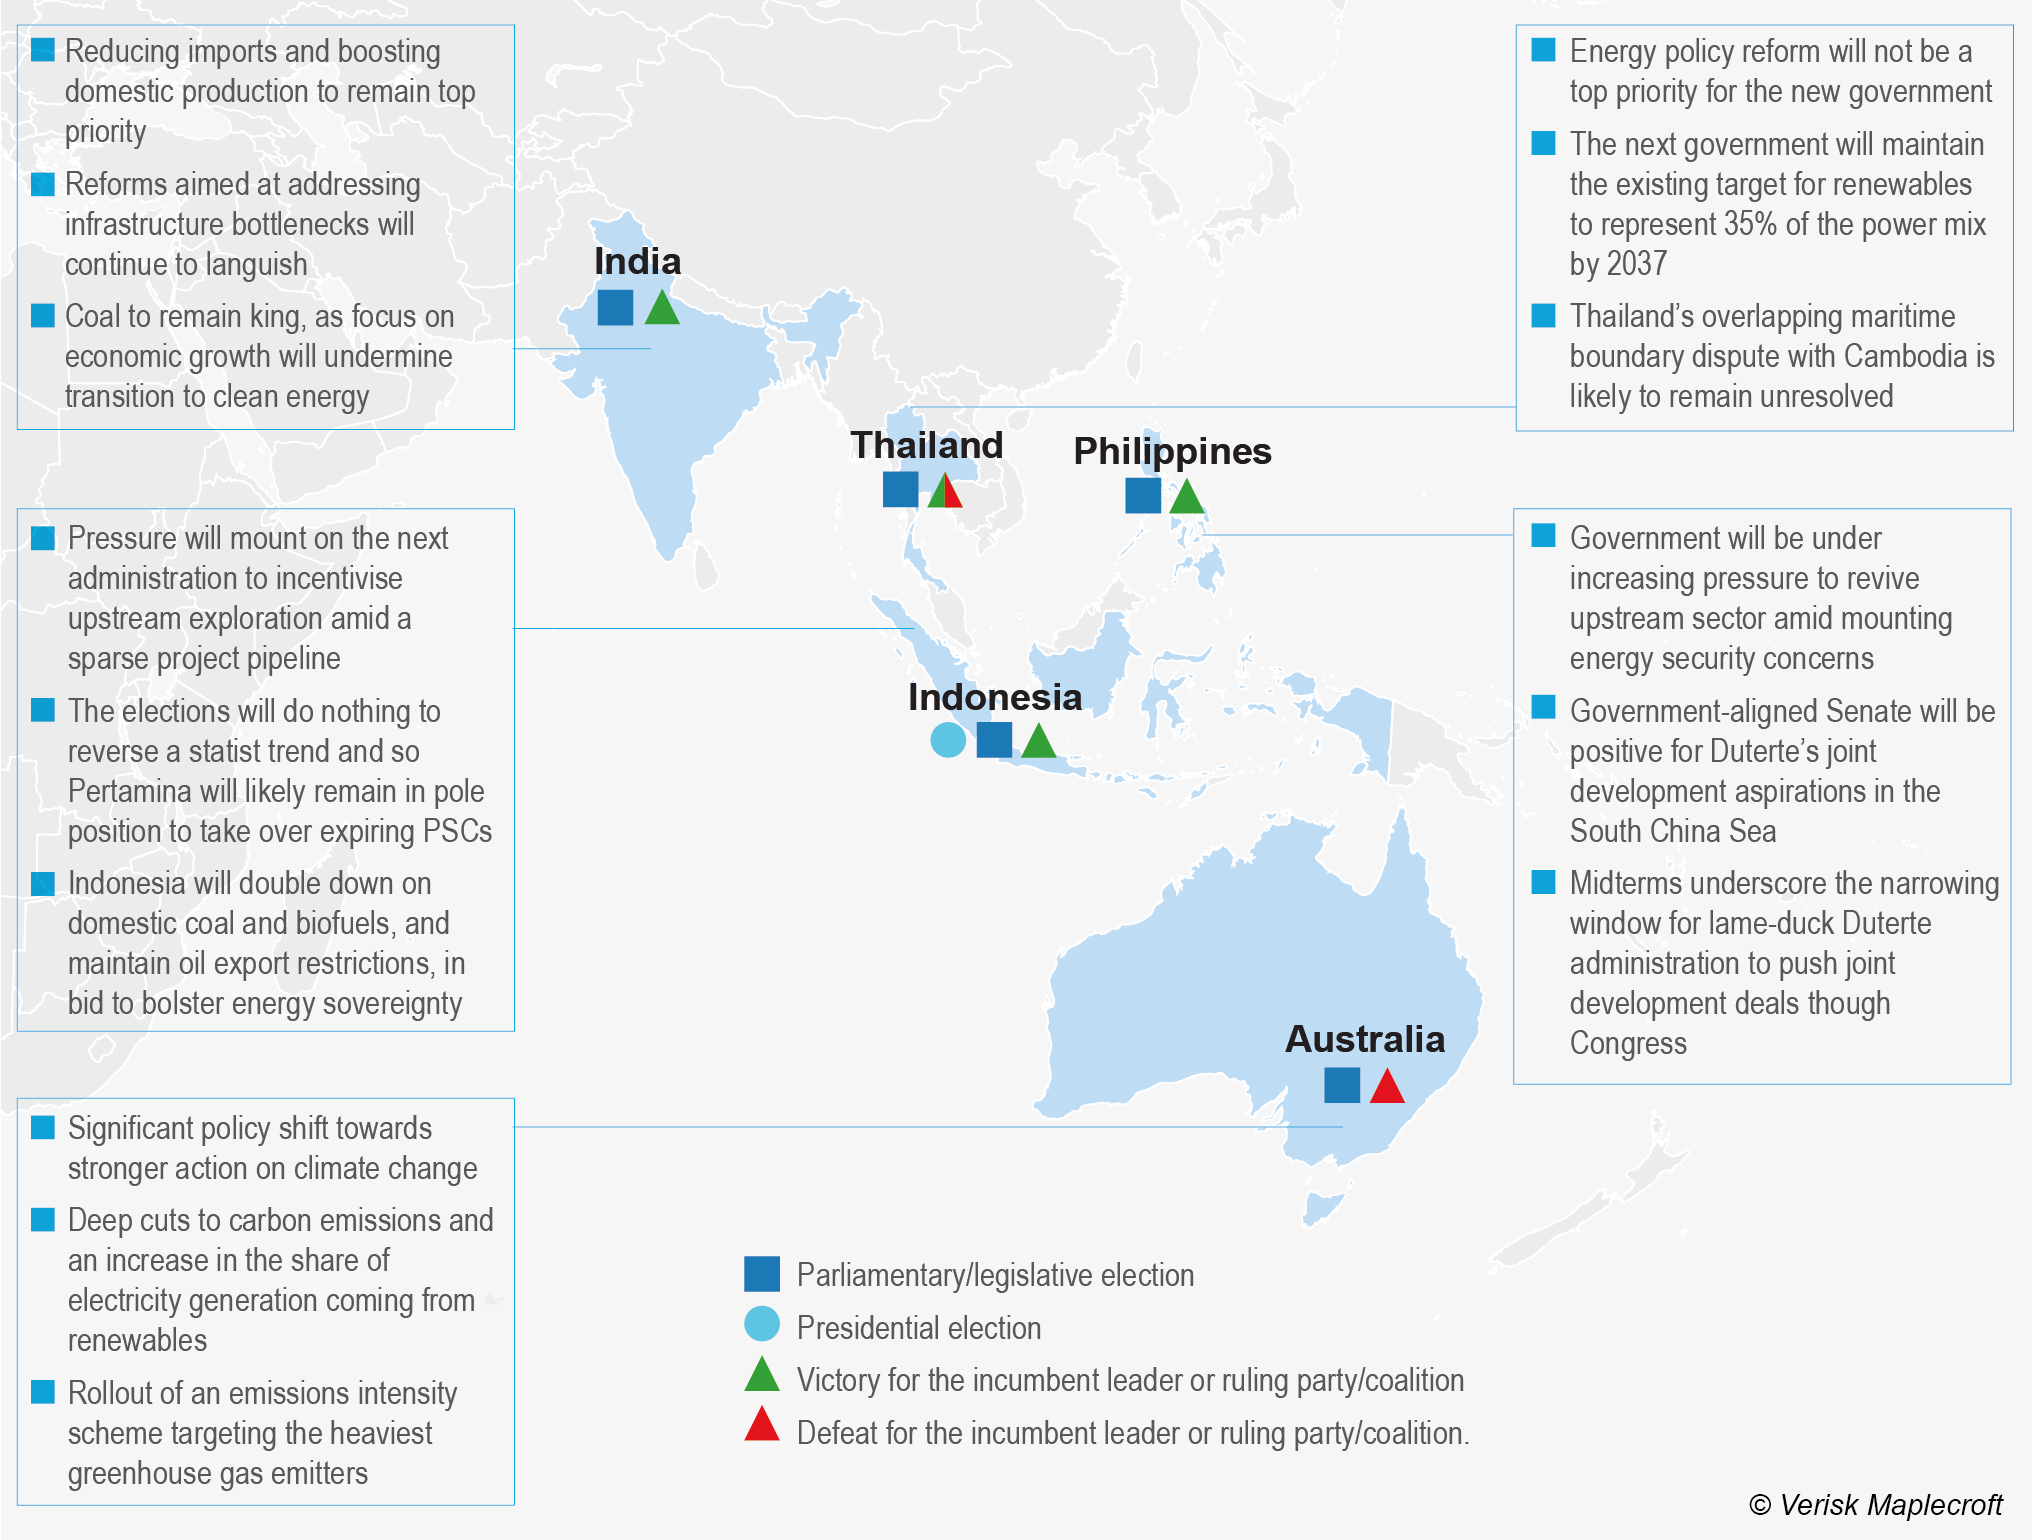 Asia Pacific elections: Implications for the energy sector